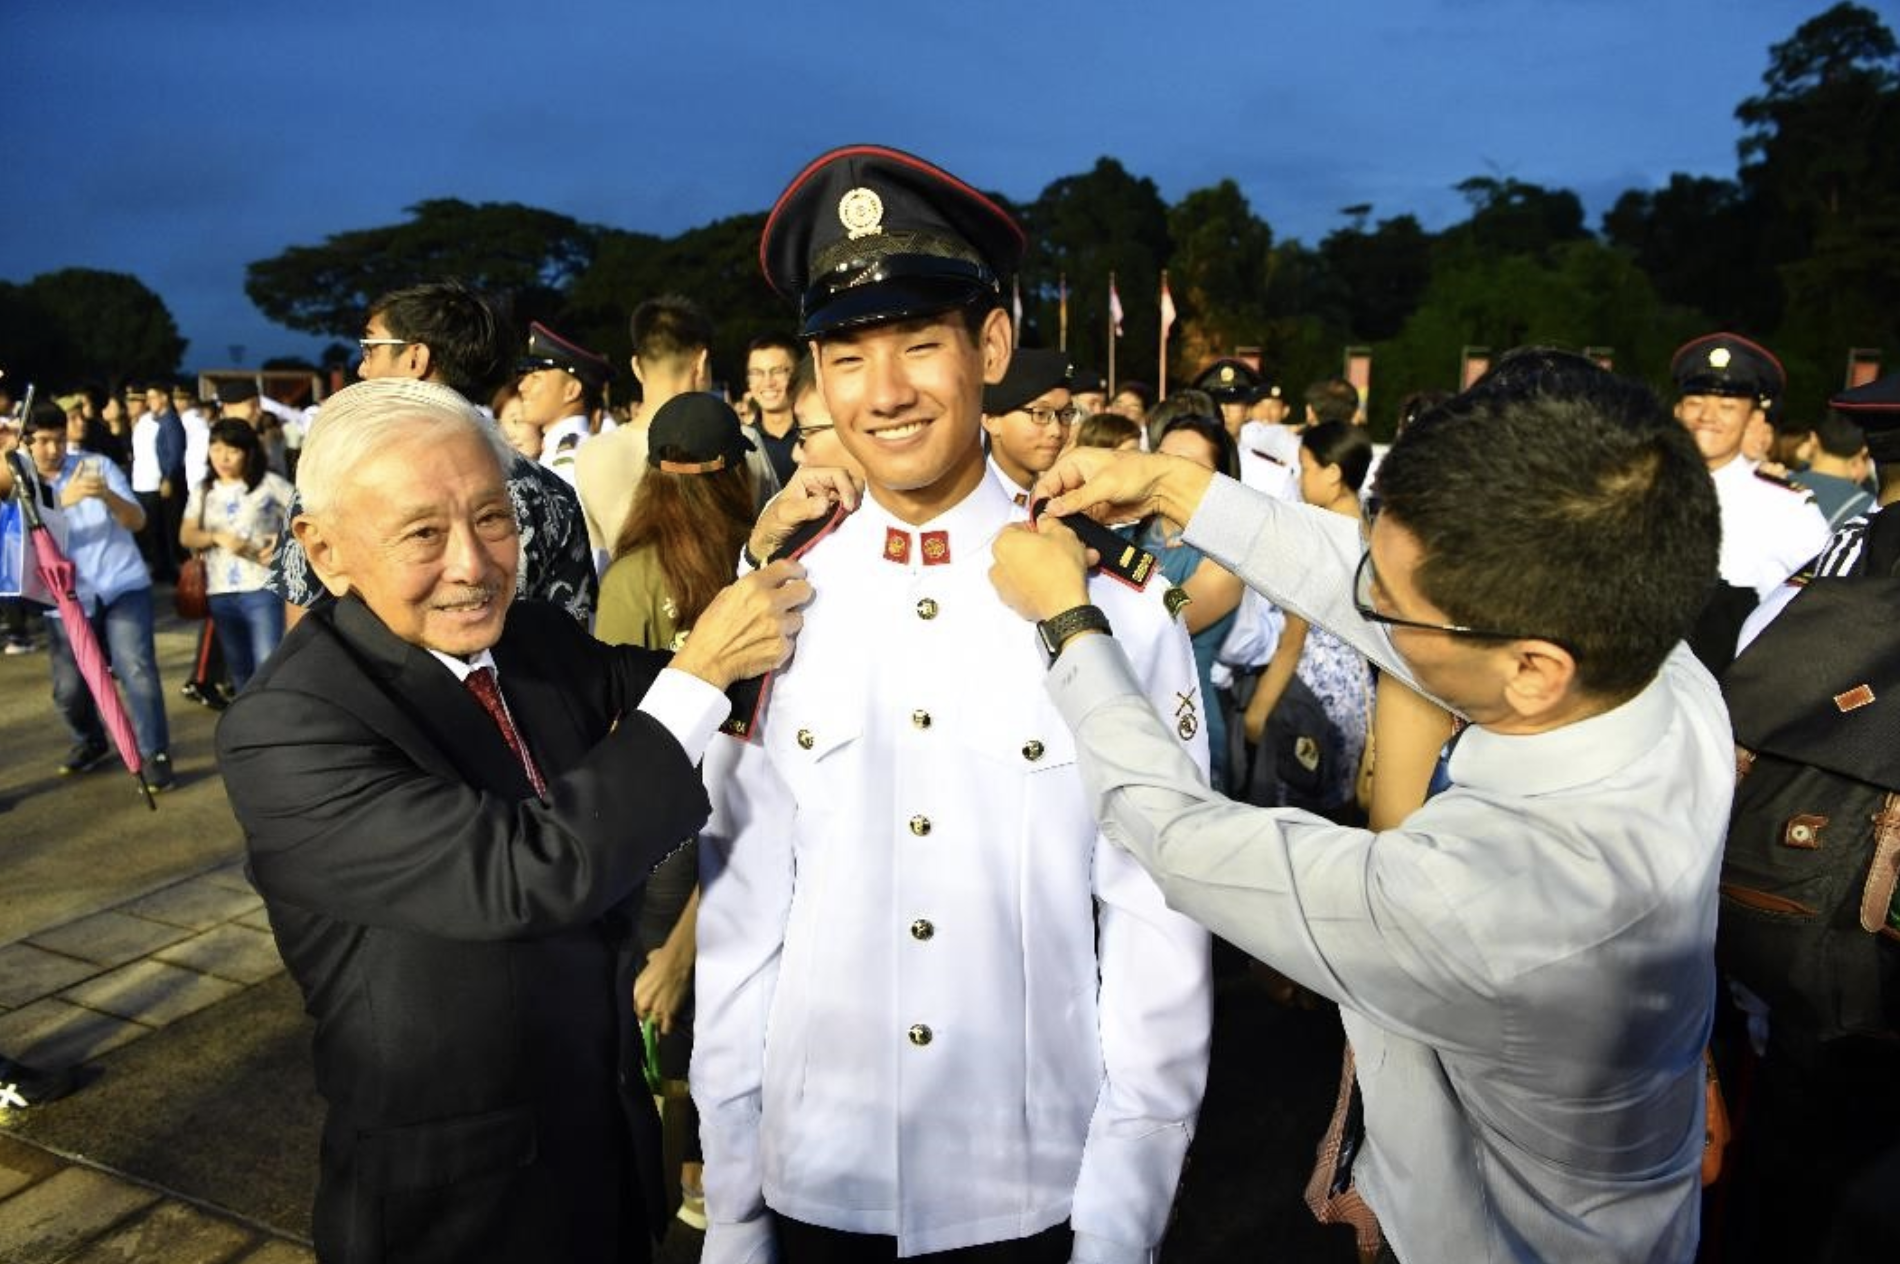 Newly-commissioned 2nd Lieutenant (2LT) Daniel Choo's grandfather LG (RET) Winston Choo and his father Warren Choo affixing the 2LT rank on to his uniform at the parade. Photo courtesy: Mindef